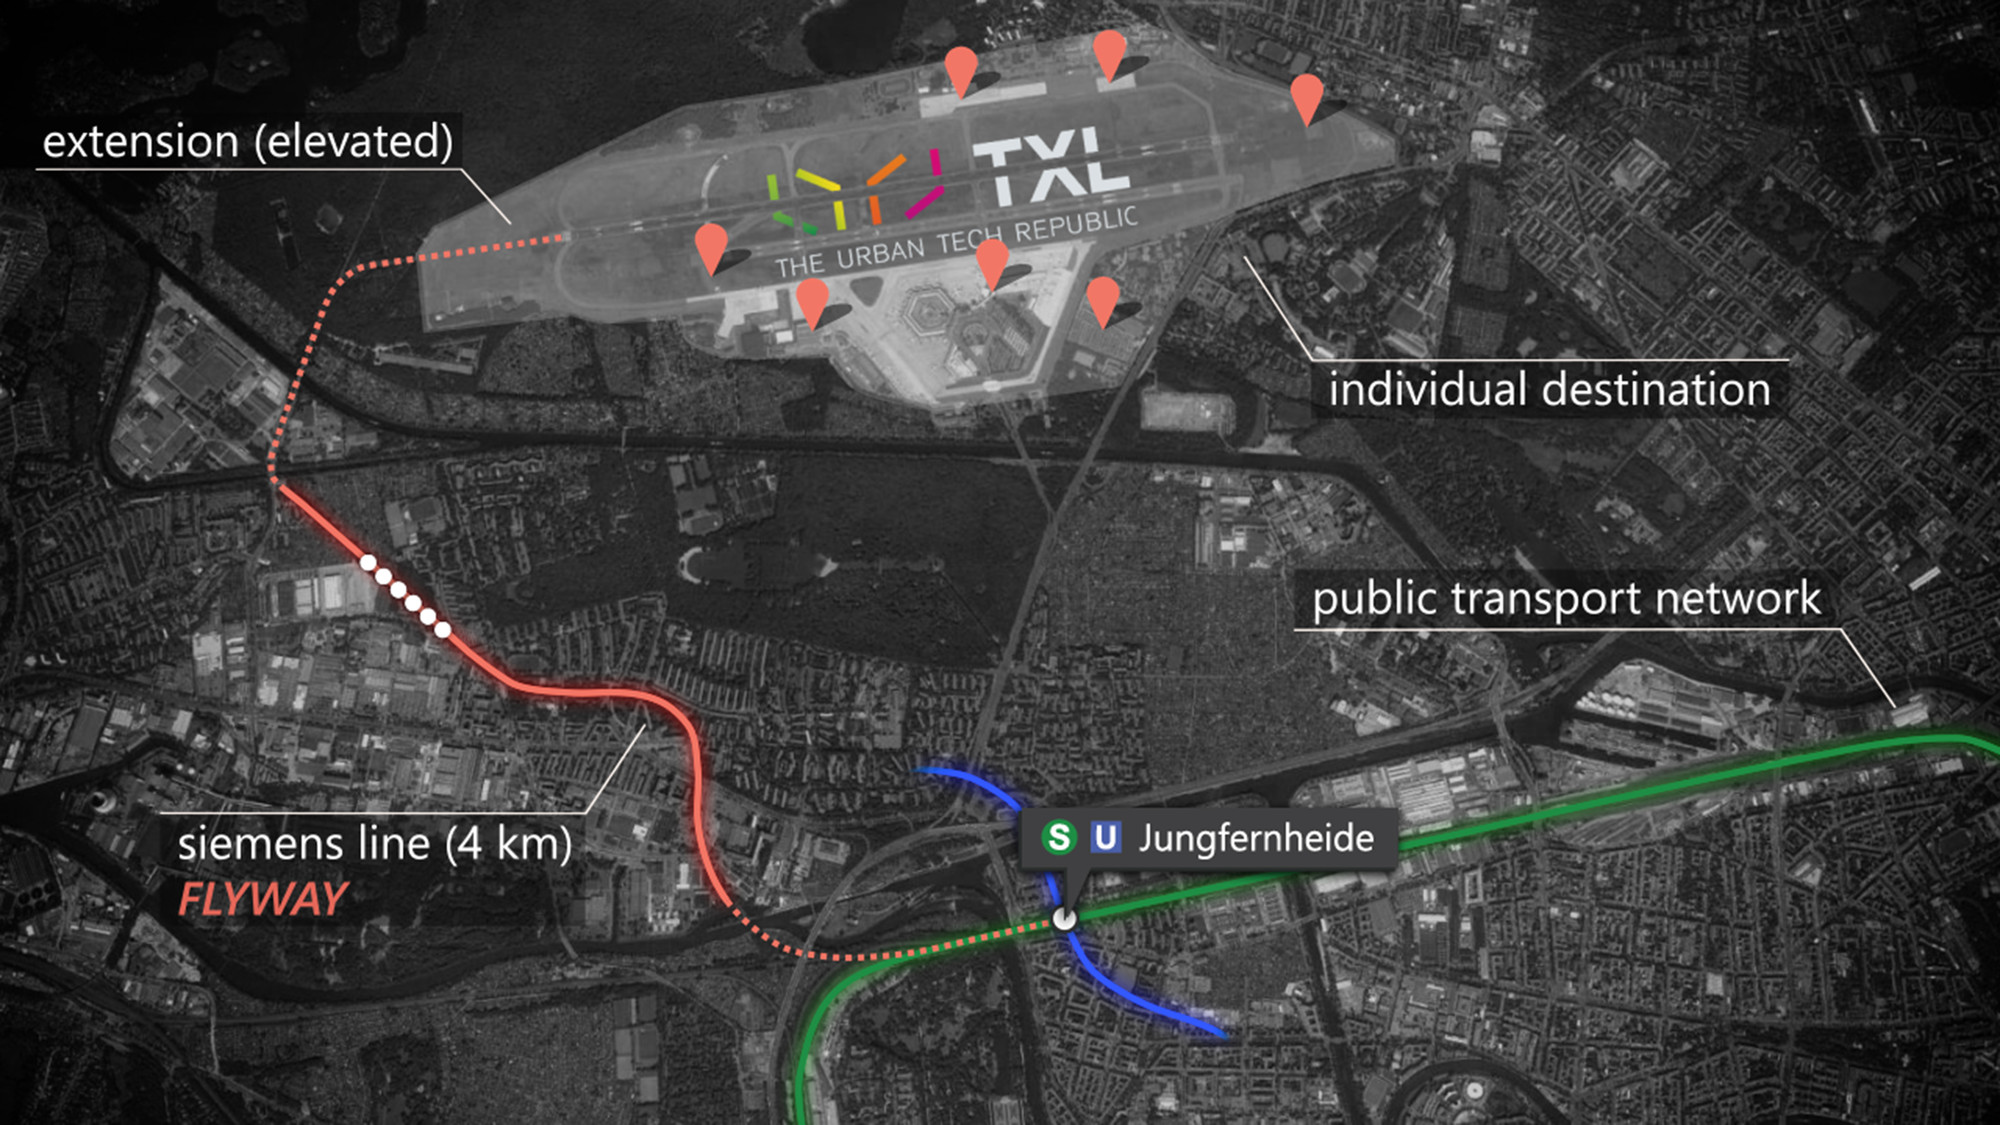 The Flyway would connect Tegel Airport to Jungfernheide station. Image © Audi Urban Future Initiative